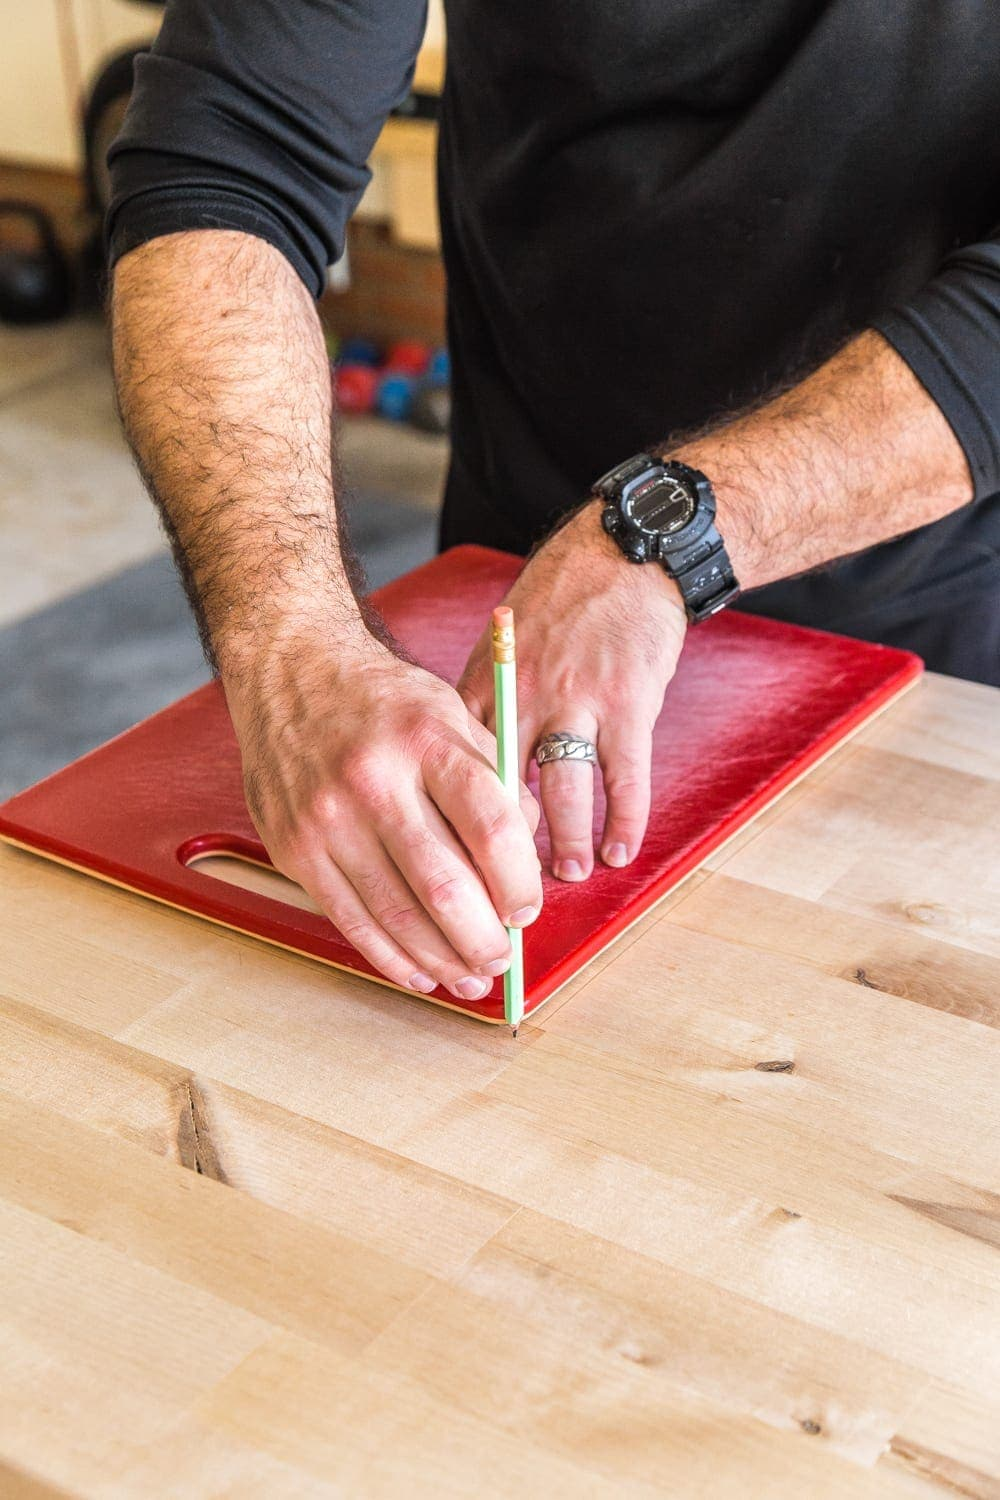 DIY Cutting Boards from Scrap Wood | How to make your own basic DIY cutting boards using scrap wood you already have in your stash to repurpose in your kitchen or give away as homemade gifts.